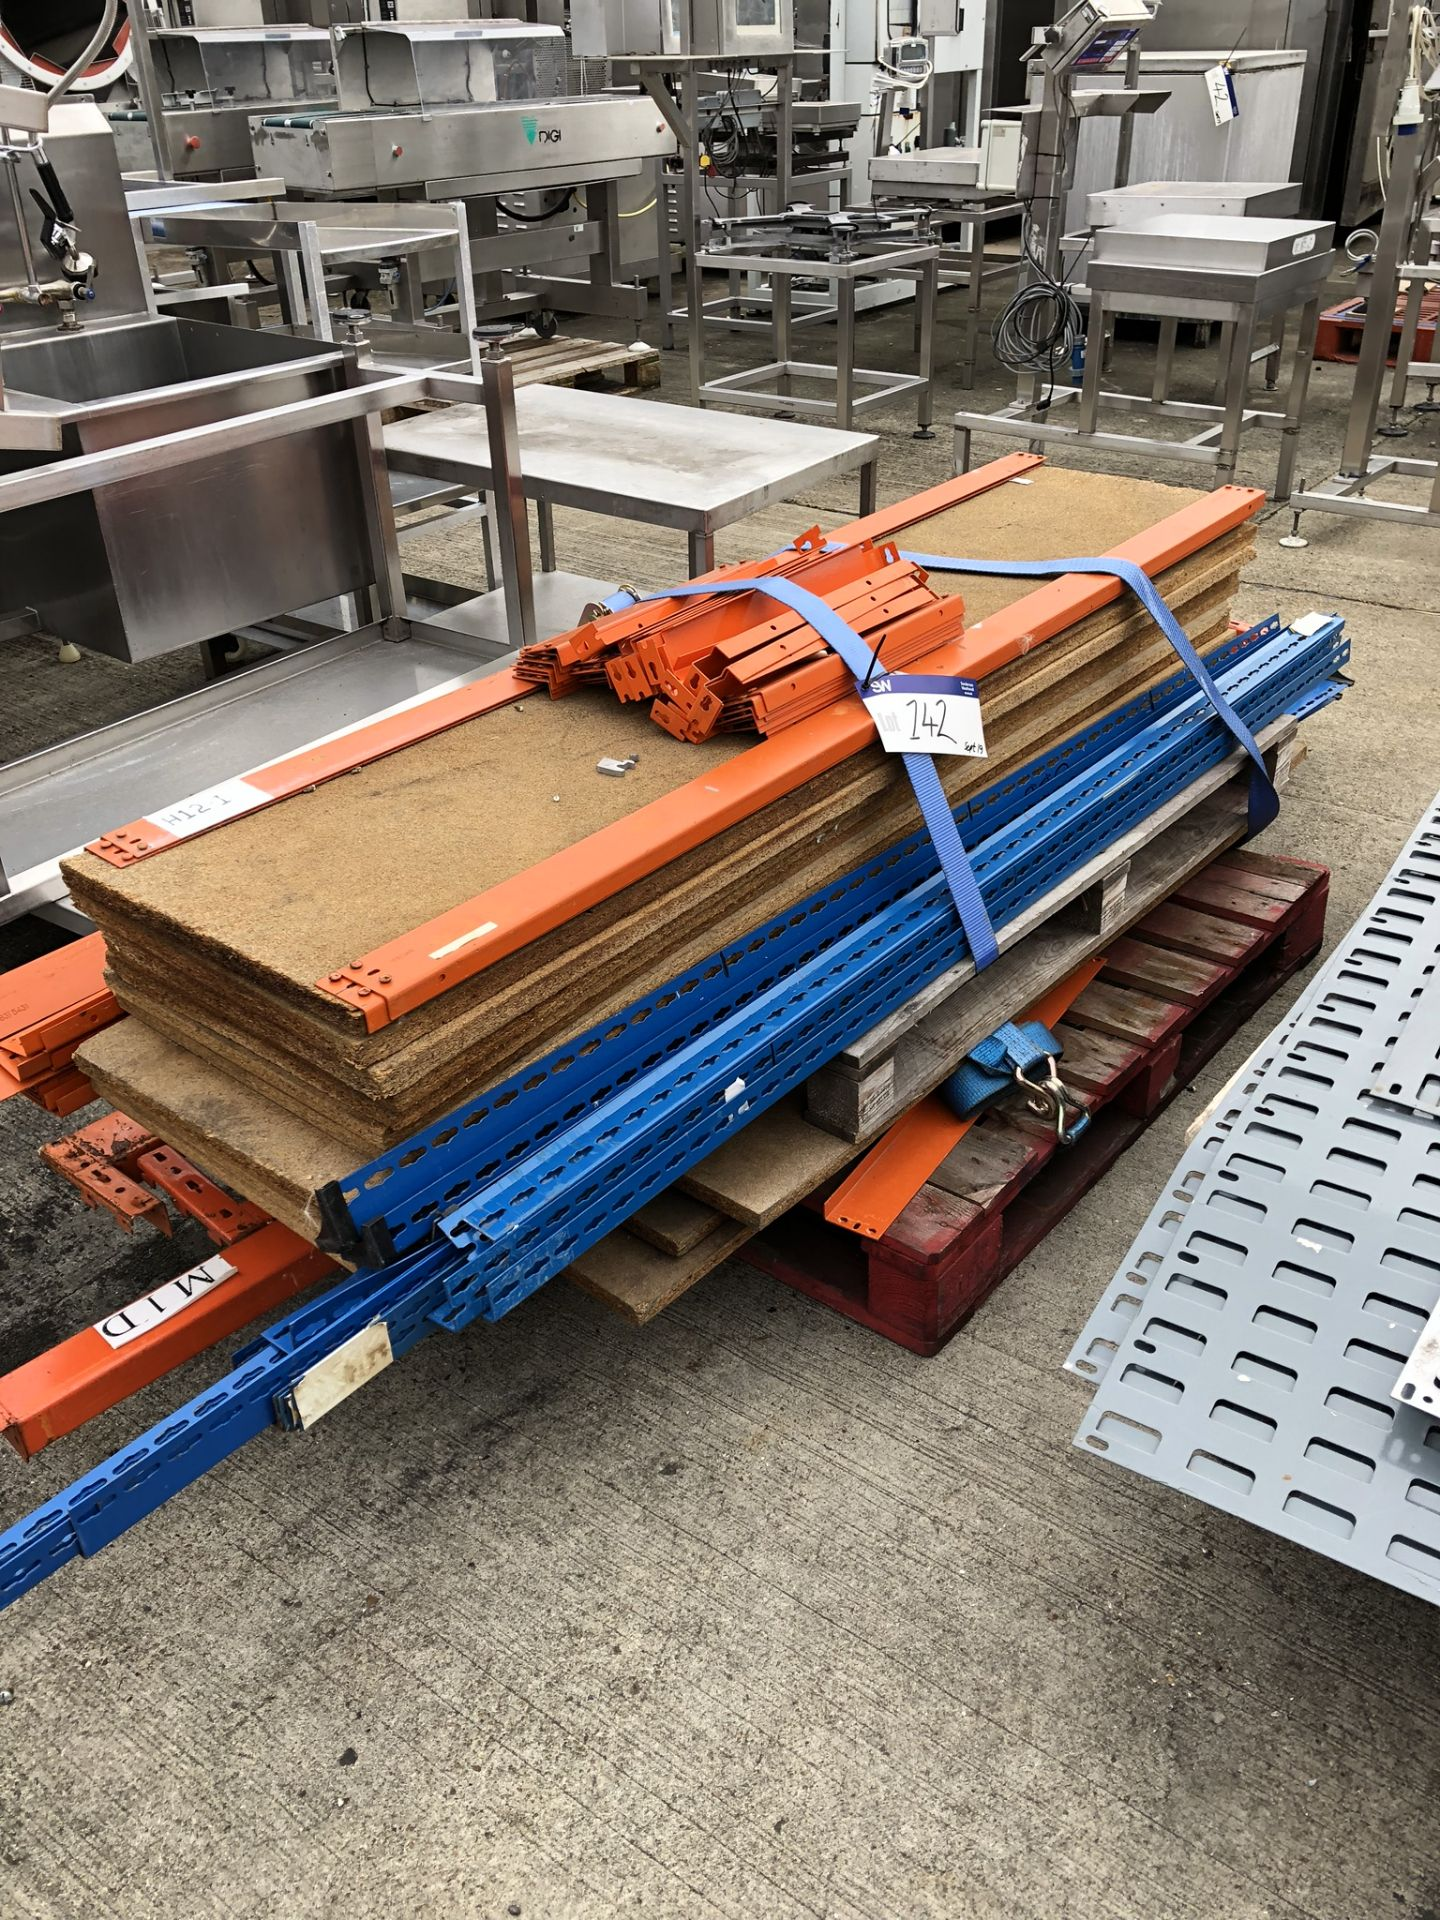 Lotto 142 - Interlocking Shelving, on pallet, lift out charge - £20